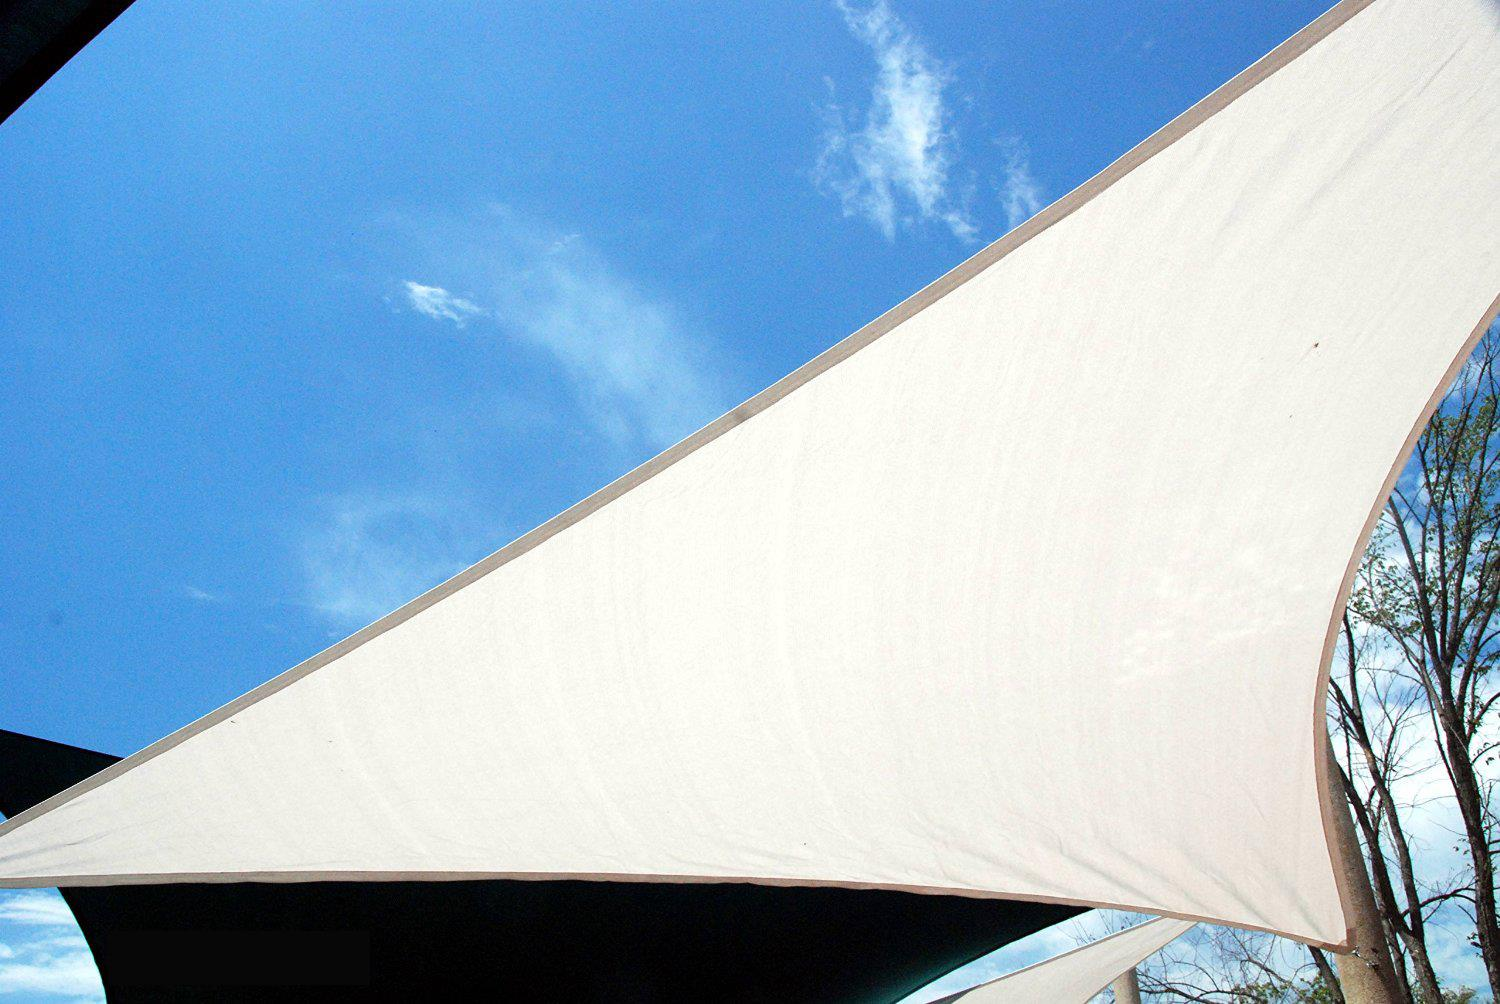 Quictent 12' 16.5' 18' 20' Triangle Sun Shade Sail Outdoor